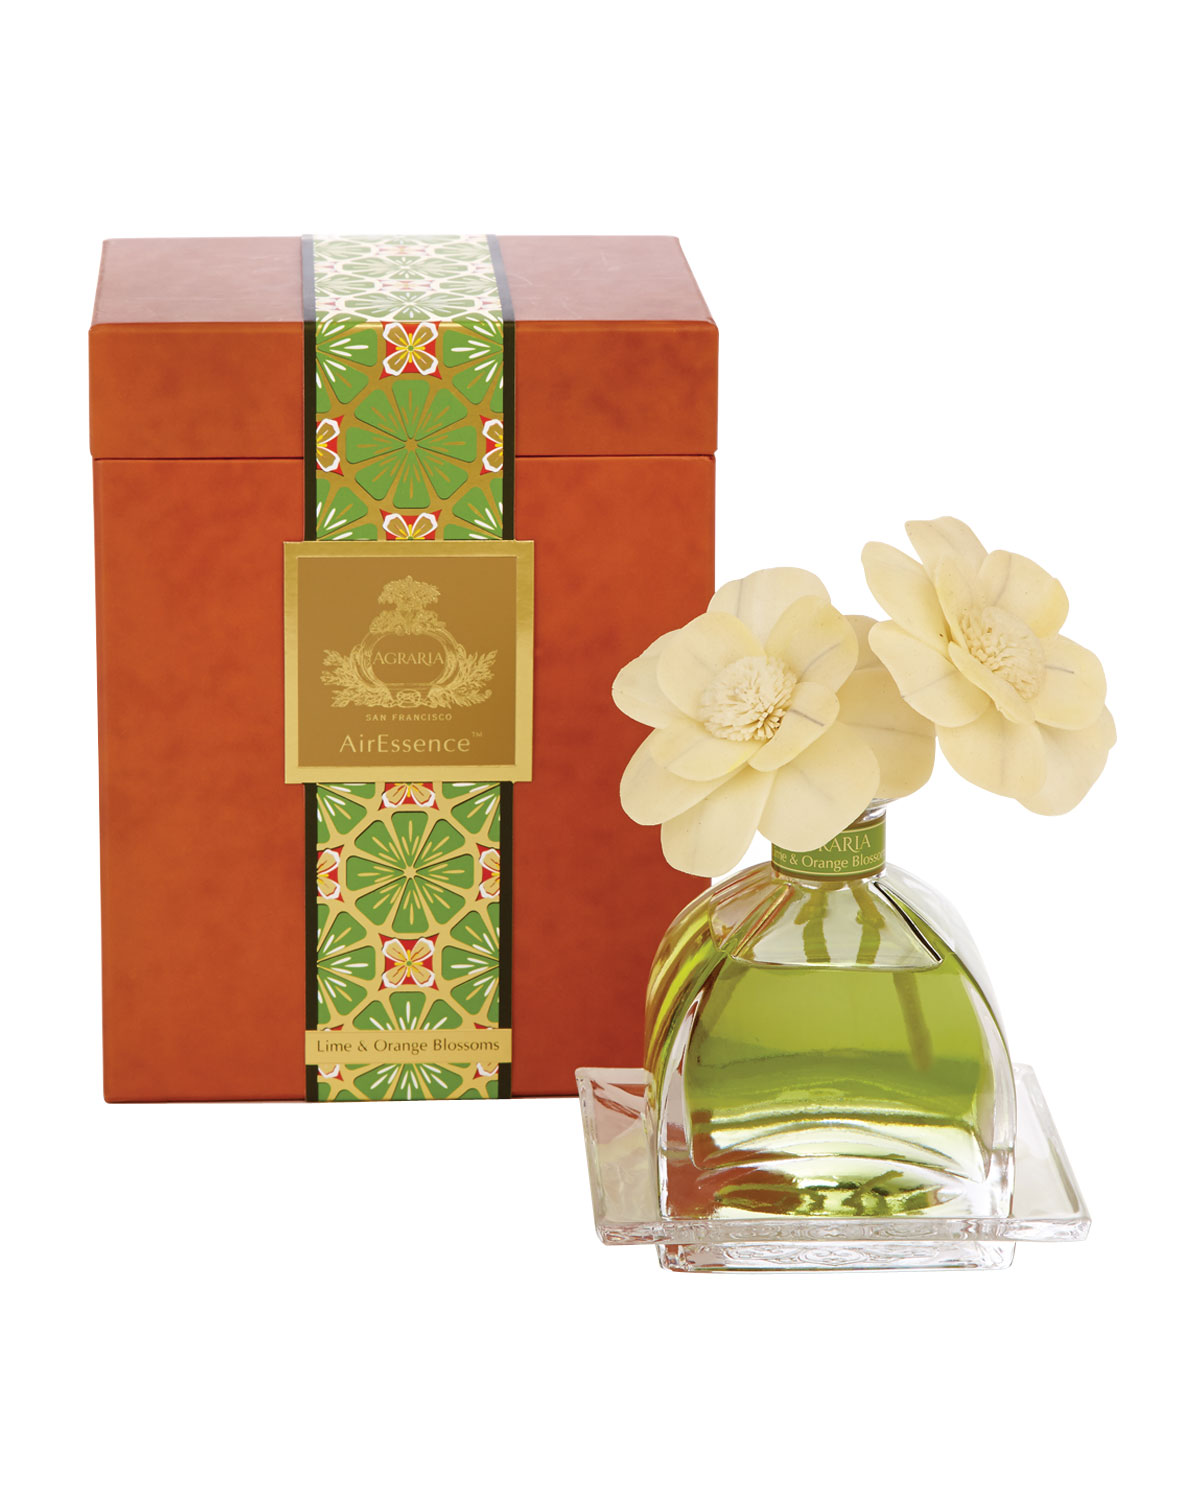 LimeOrange Blossom AirEssence Diffuser - Agraria